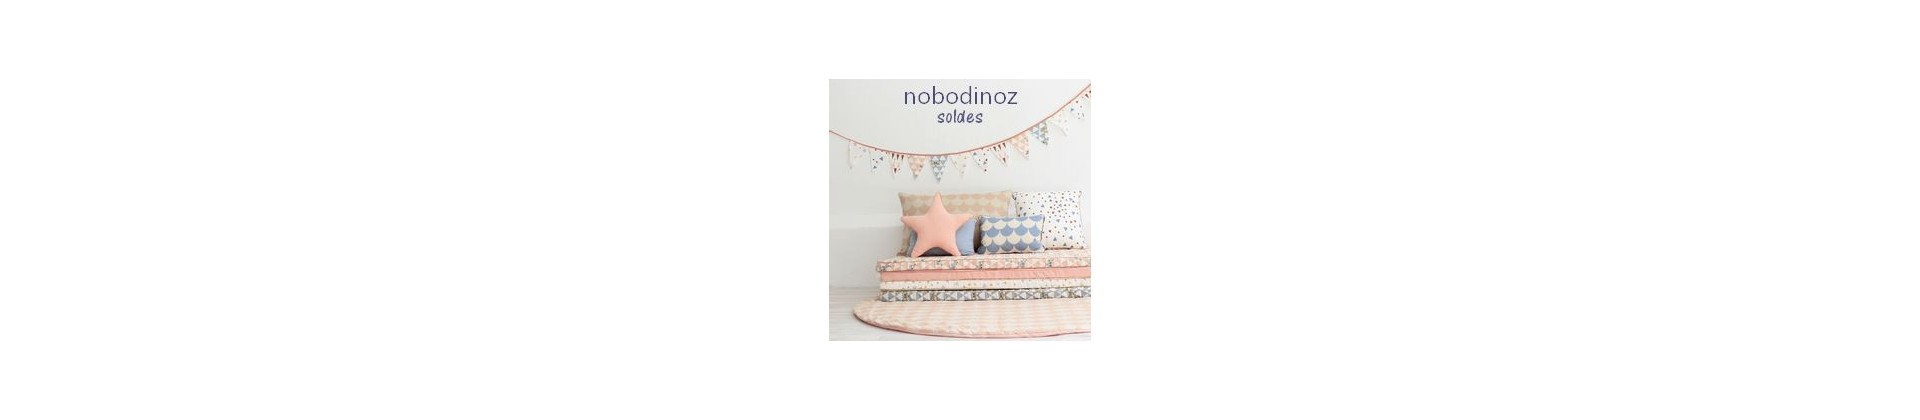 shop online - nobodinoz sale - worldwide shipping